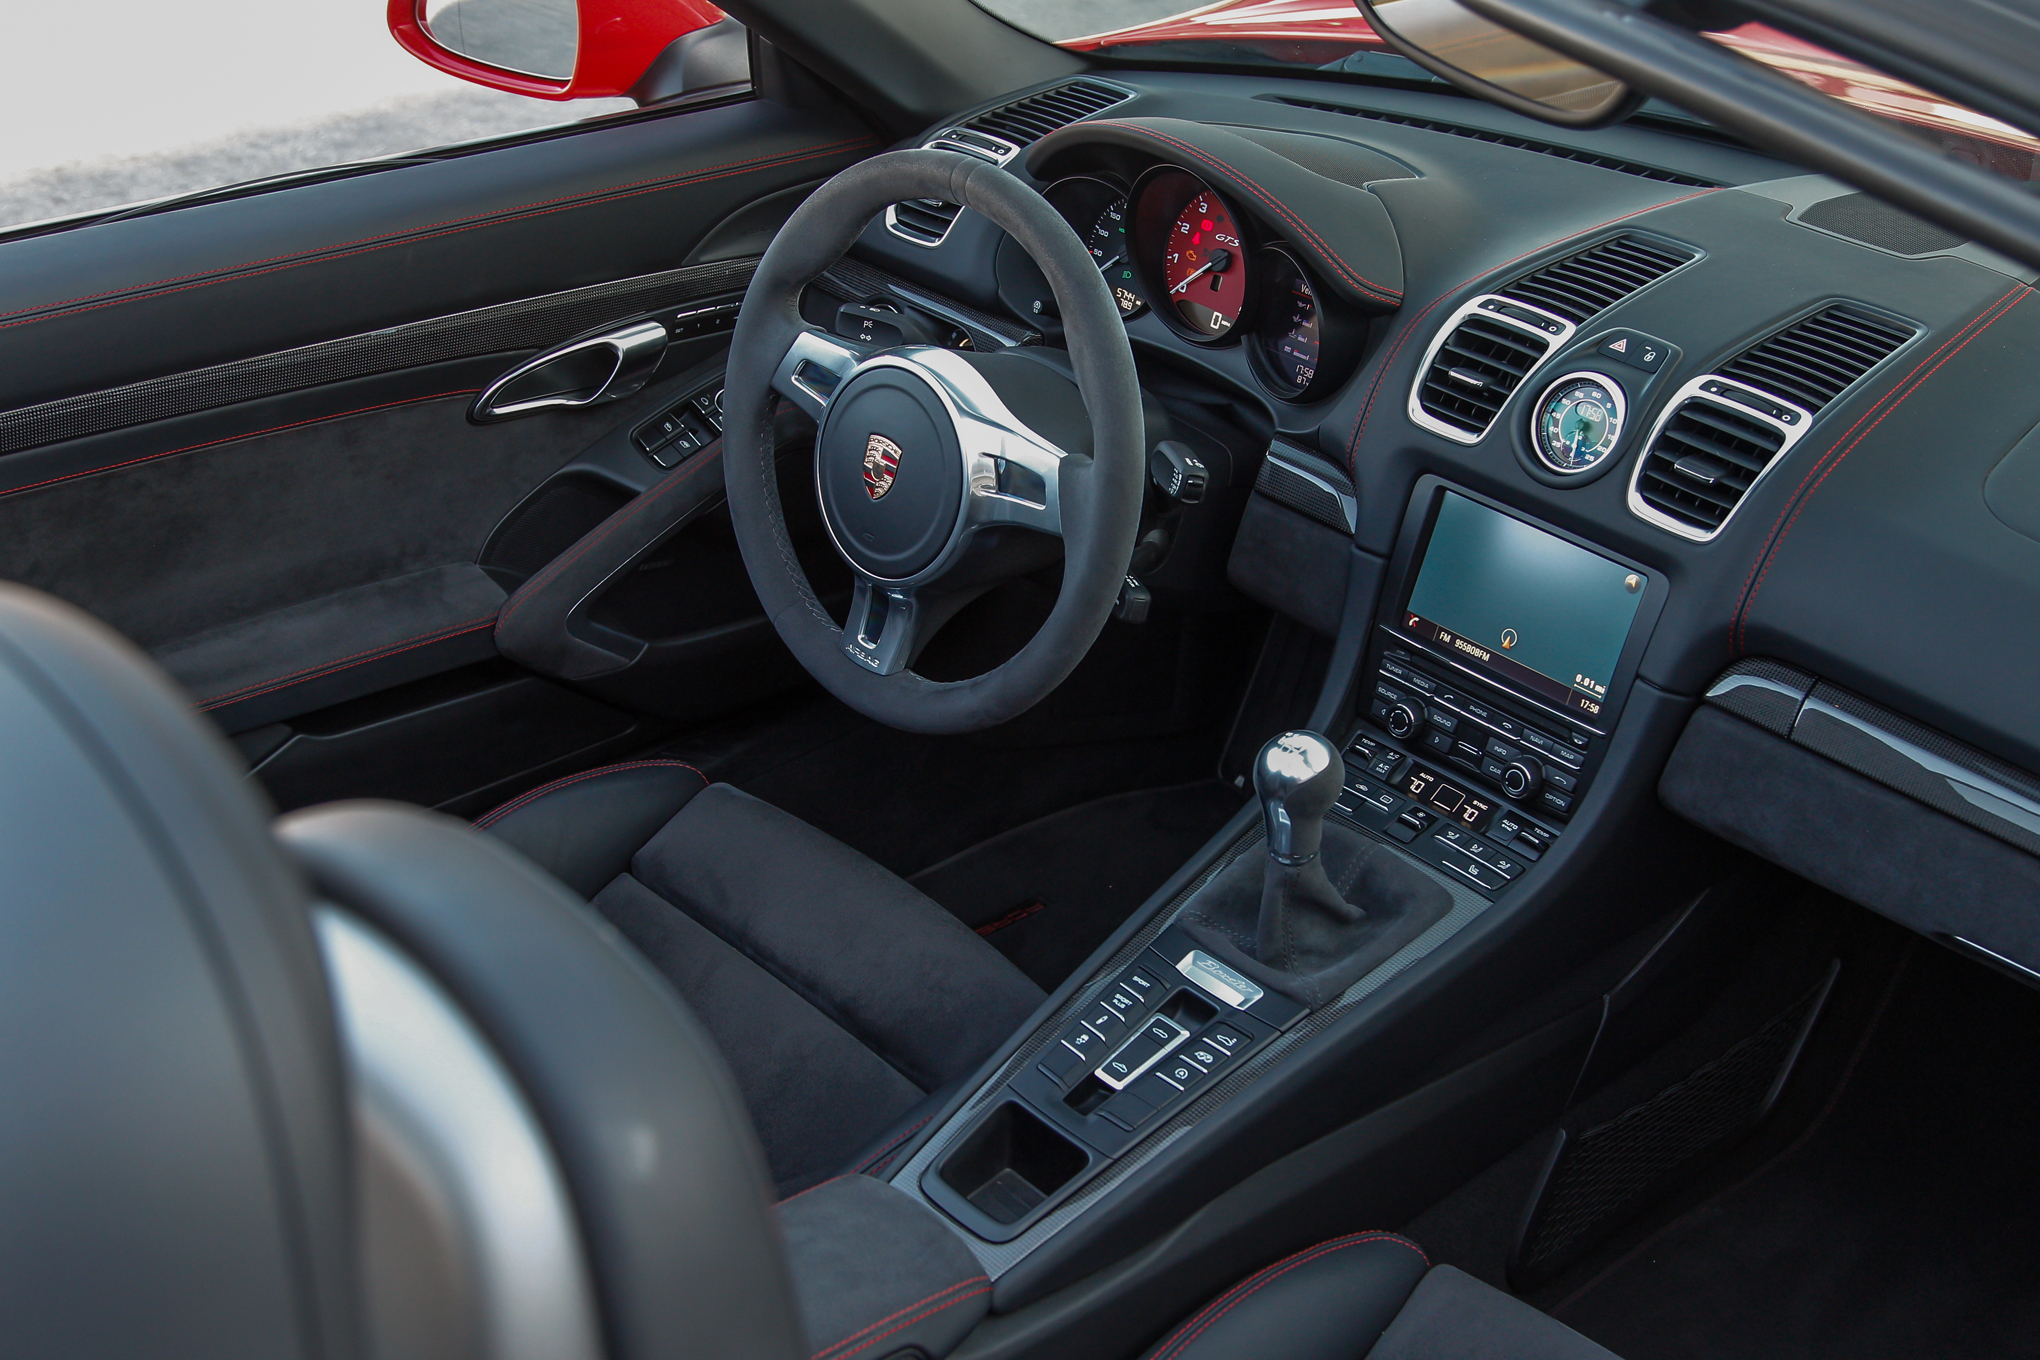 2015 porsche boxster gts dashboard 1320 cars. Black Bedroom Furniture Sets. Home Design Ideas